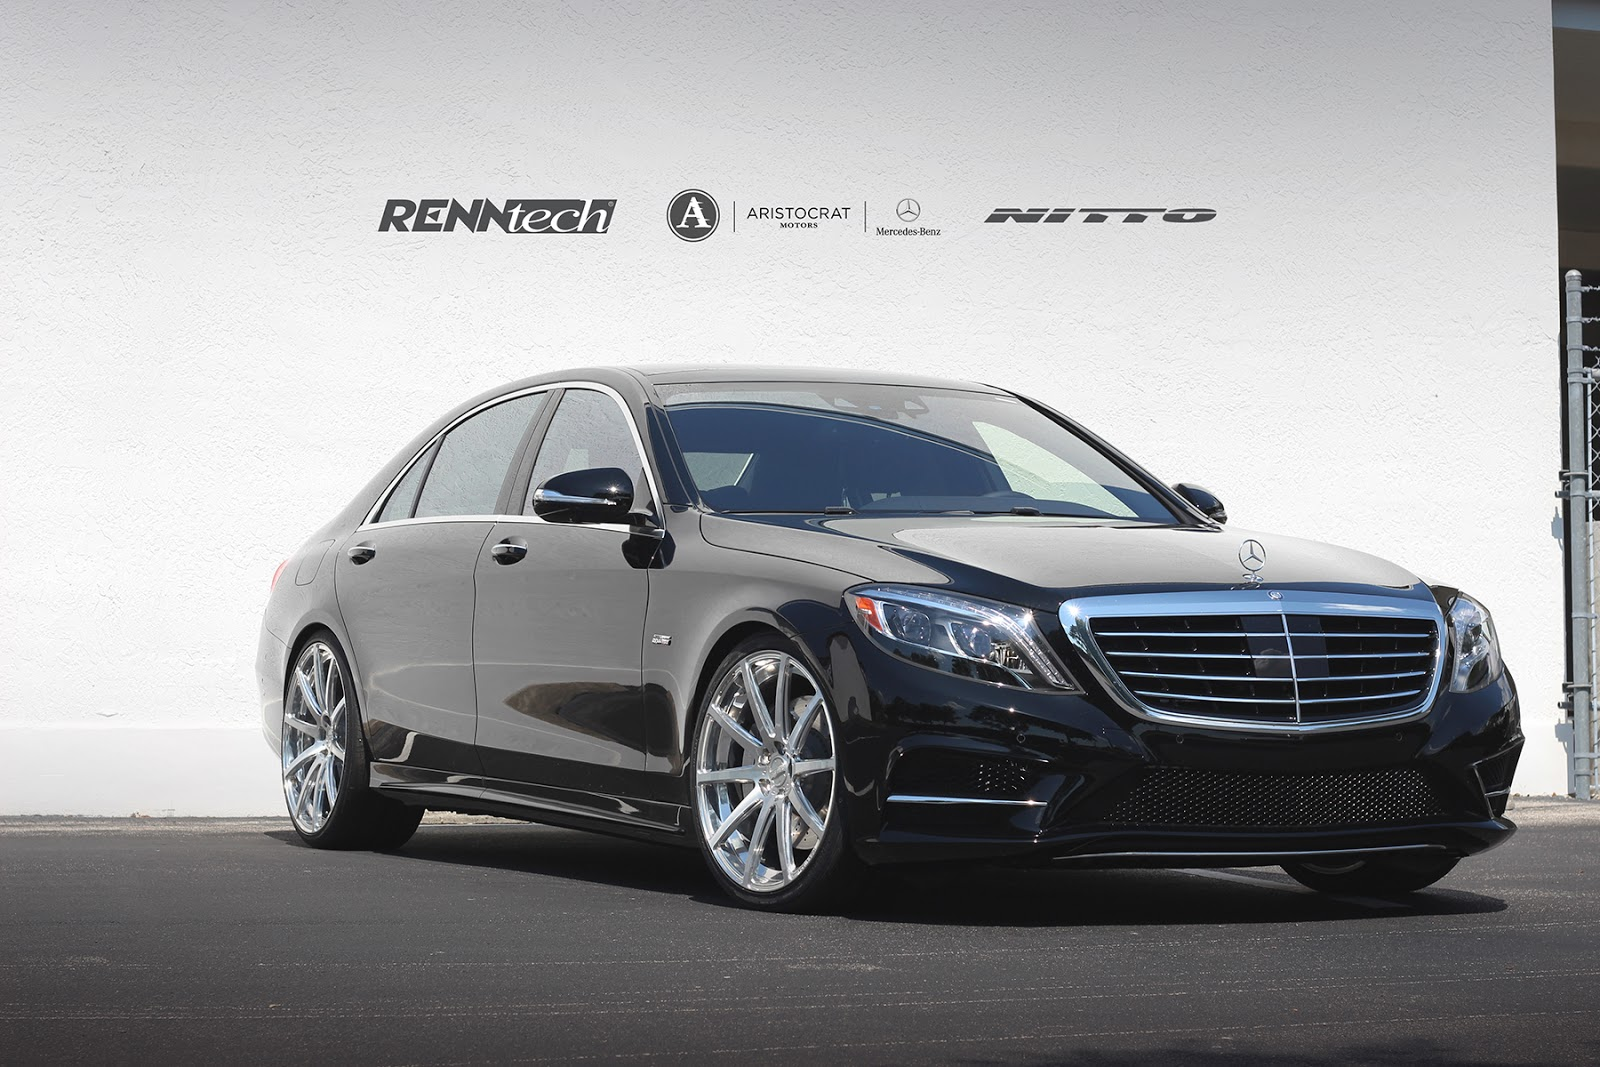 Renntech news mercedes benz s 550 renntech for Pictures of a mercedes benz